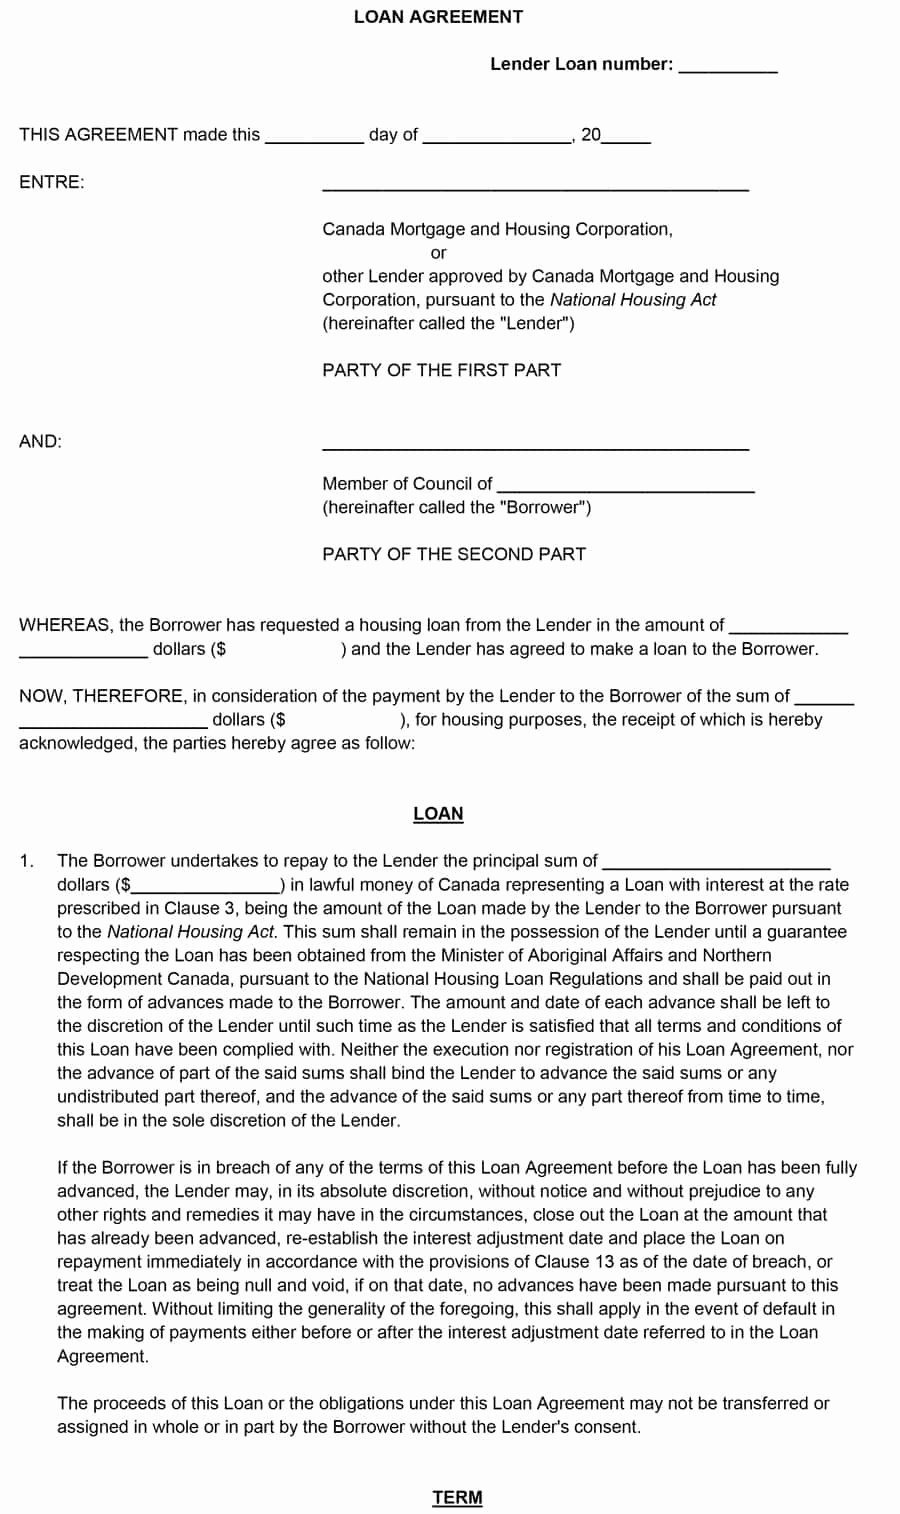 Loan Agreement Template Pdf Elegant 40 Free Loan Agreement Templates [word & Pdf] Template Lab